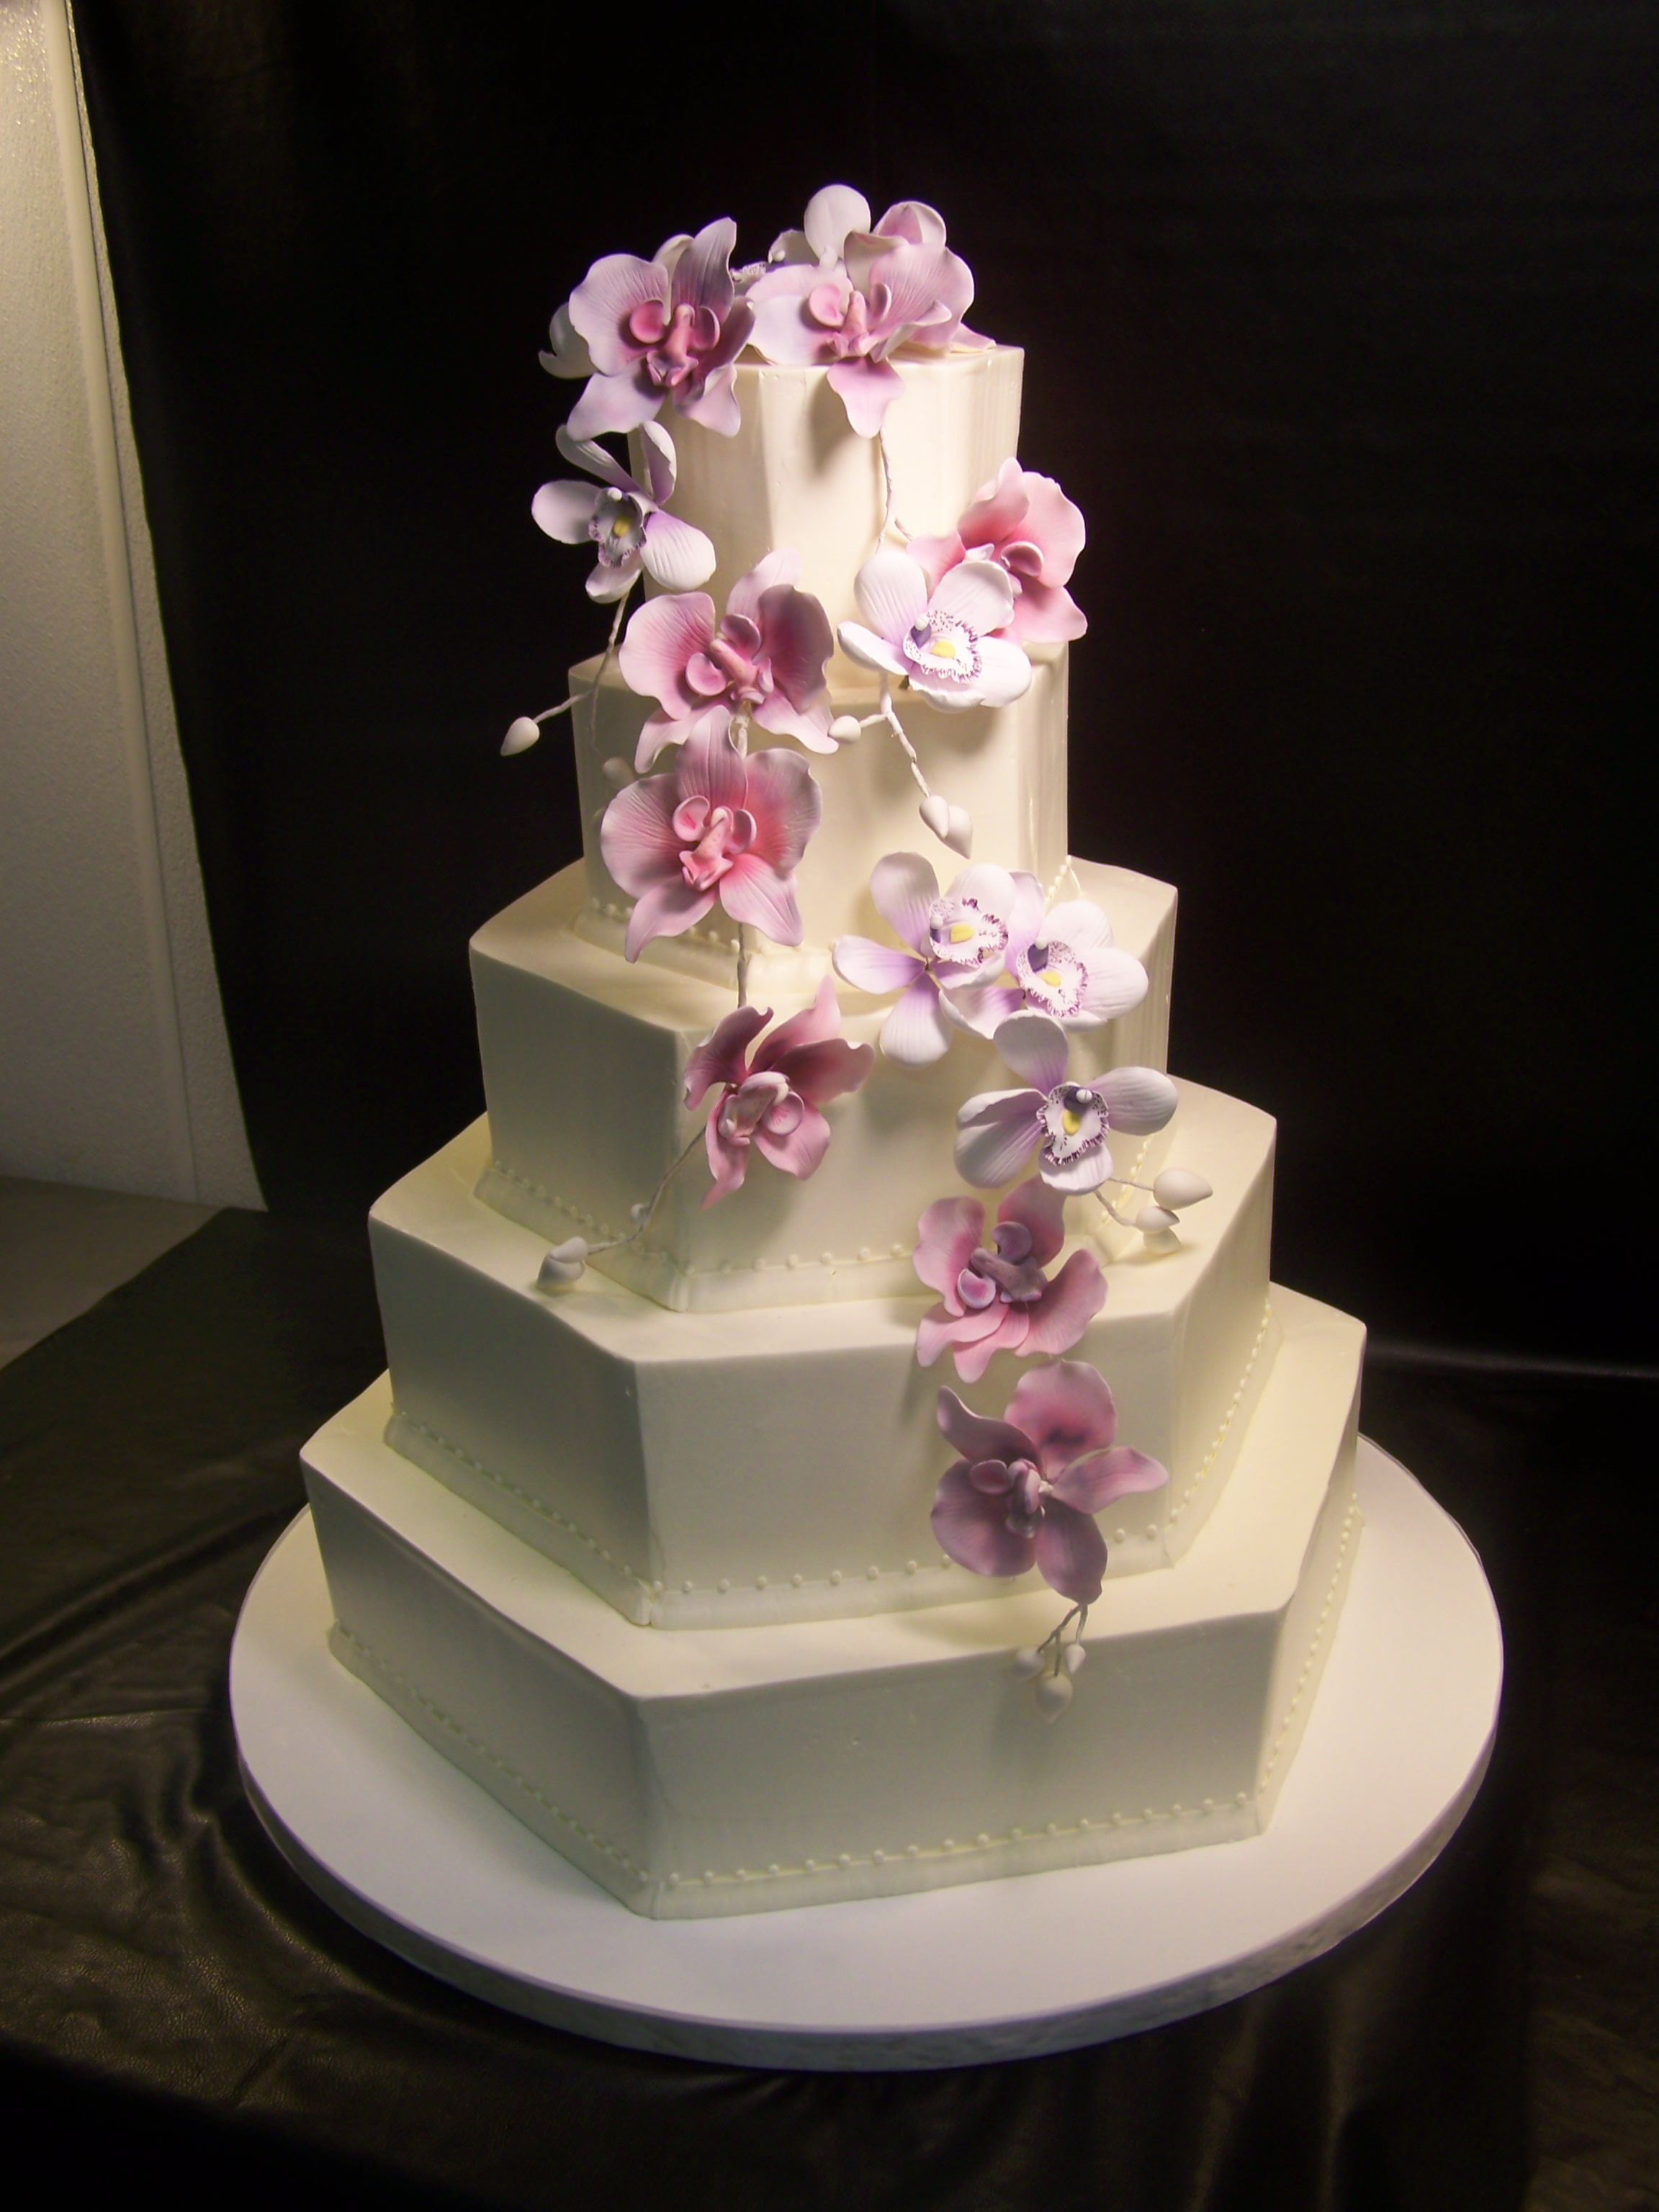 Hexagonal Cake Dummy in Polystyrene